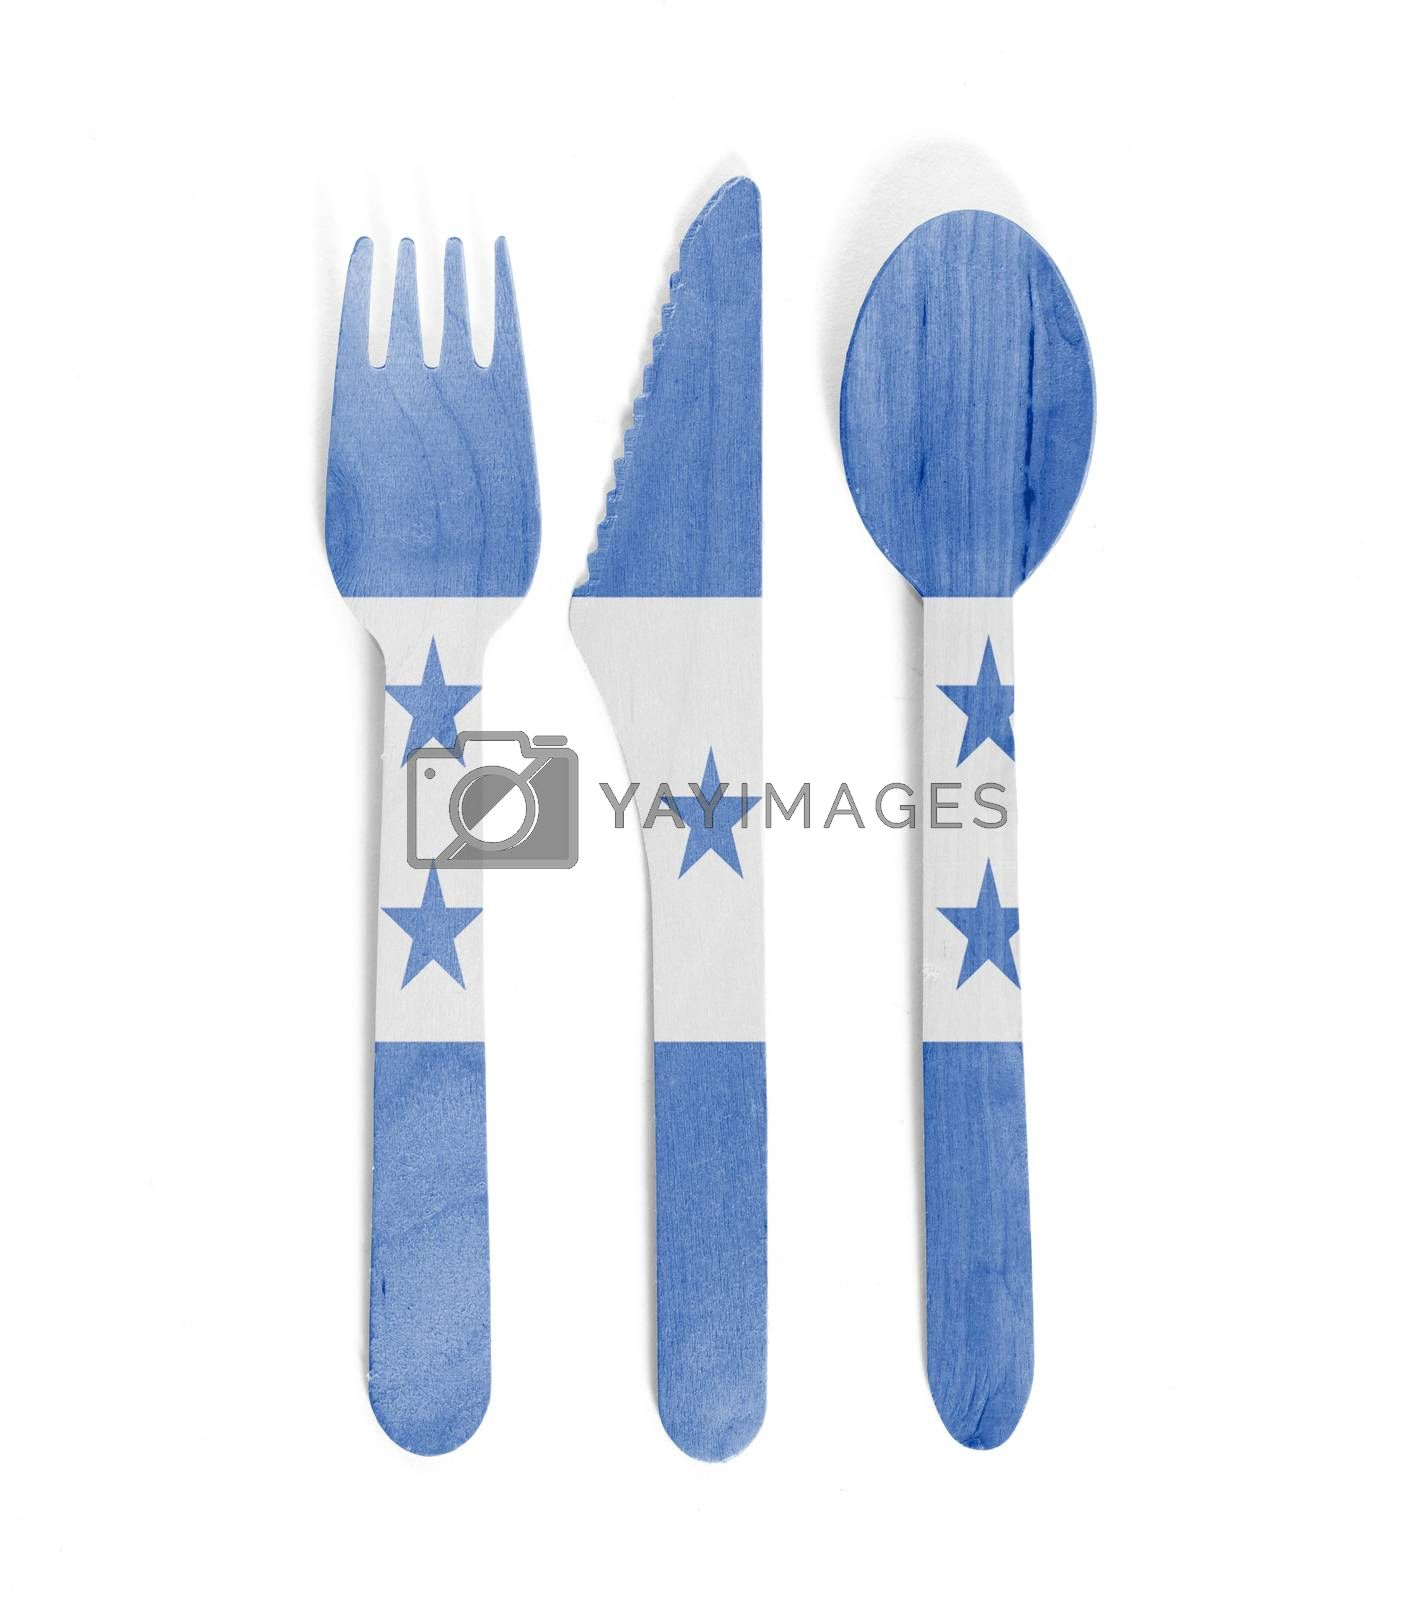 Eco friendly wooden cutlery - Plastic free concept - Isolated - Flag of Honduras